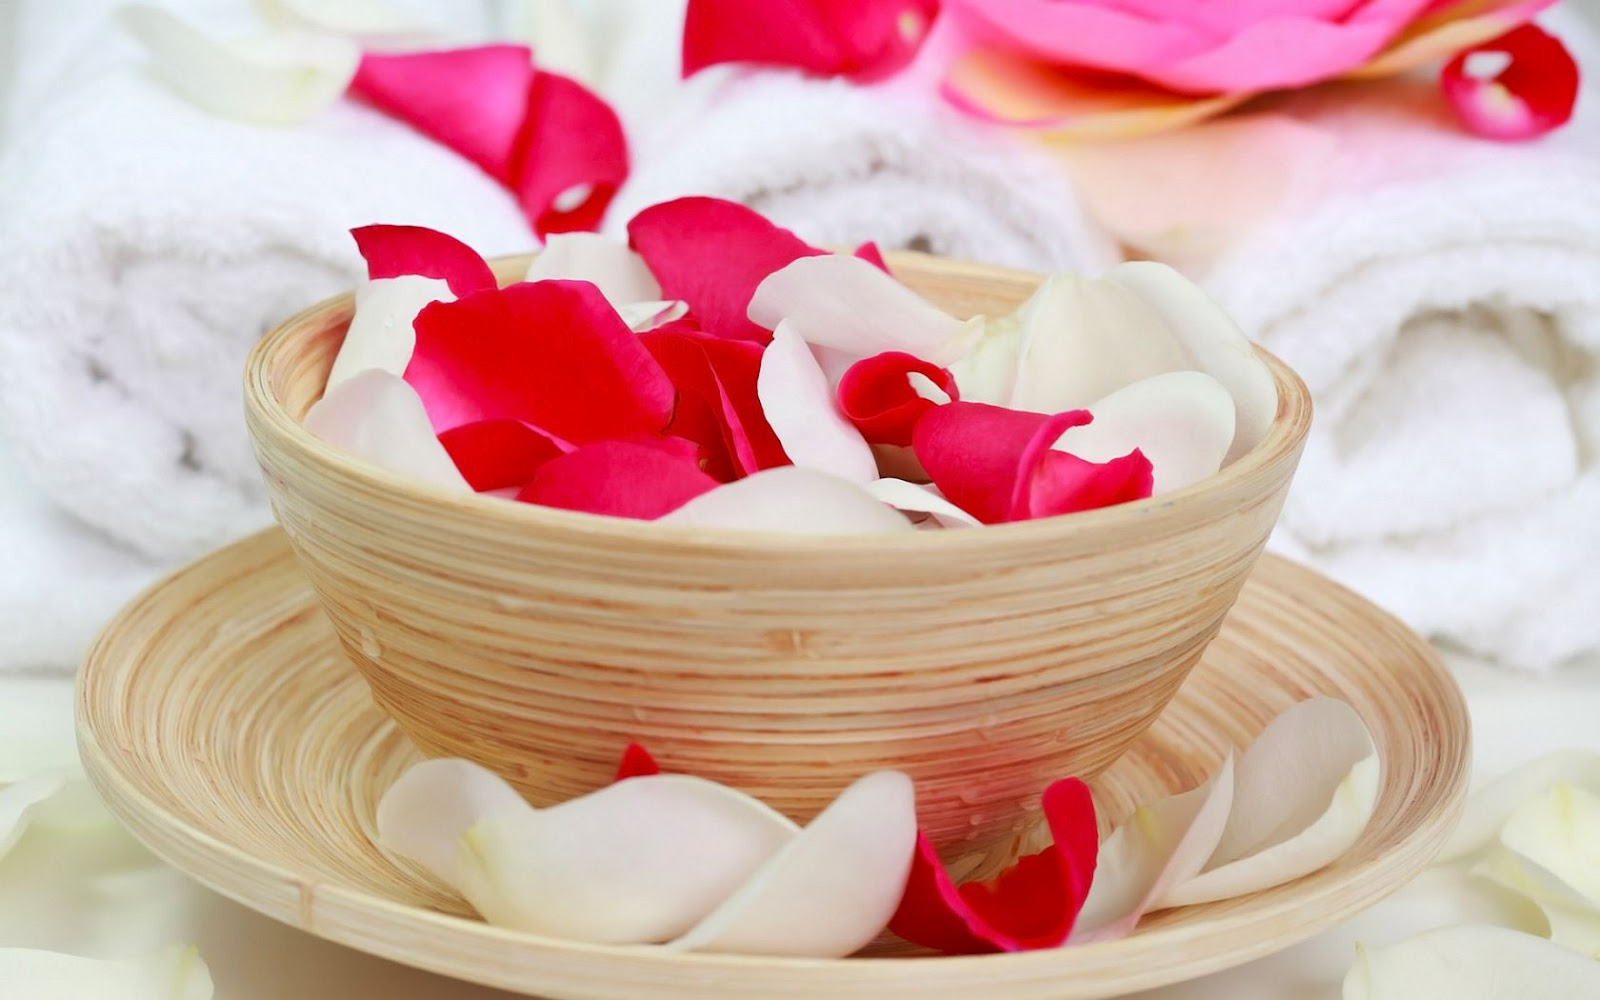 White Rose Petals Wallpaper Red White Rose Petals Towels